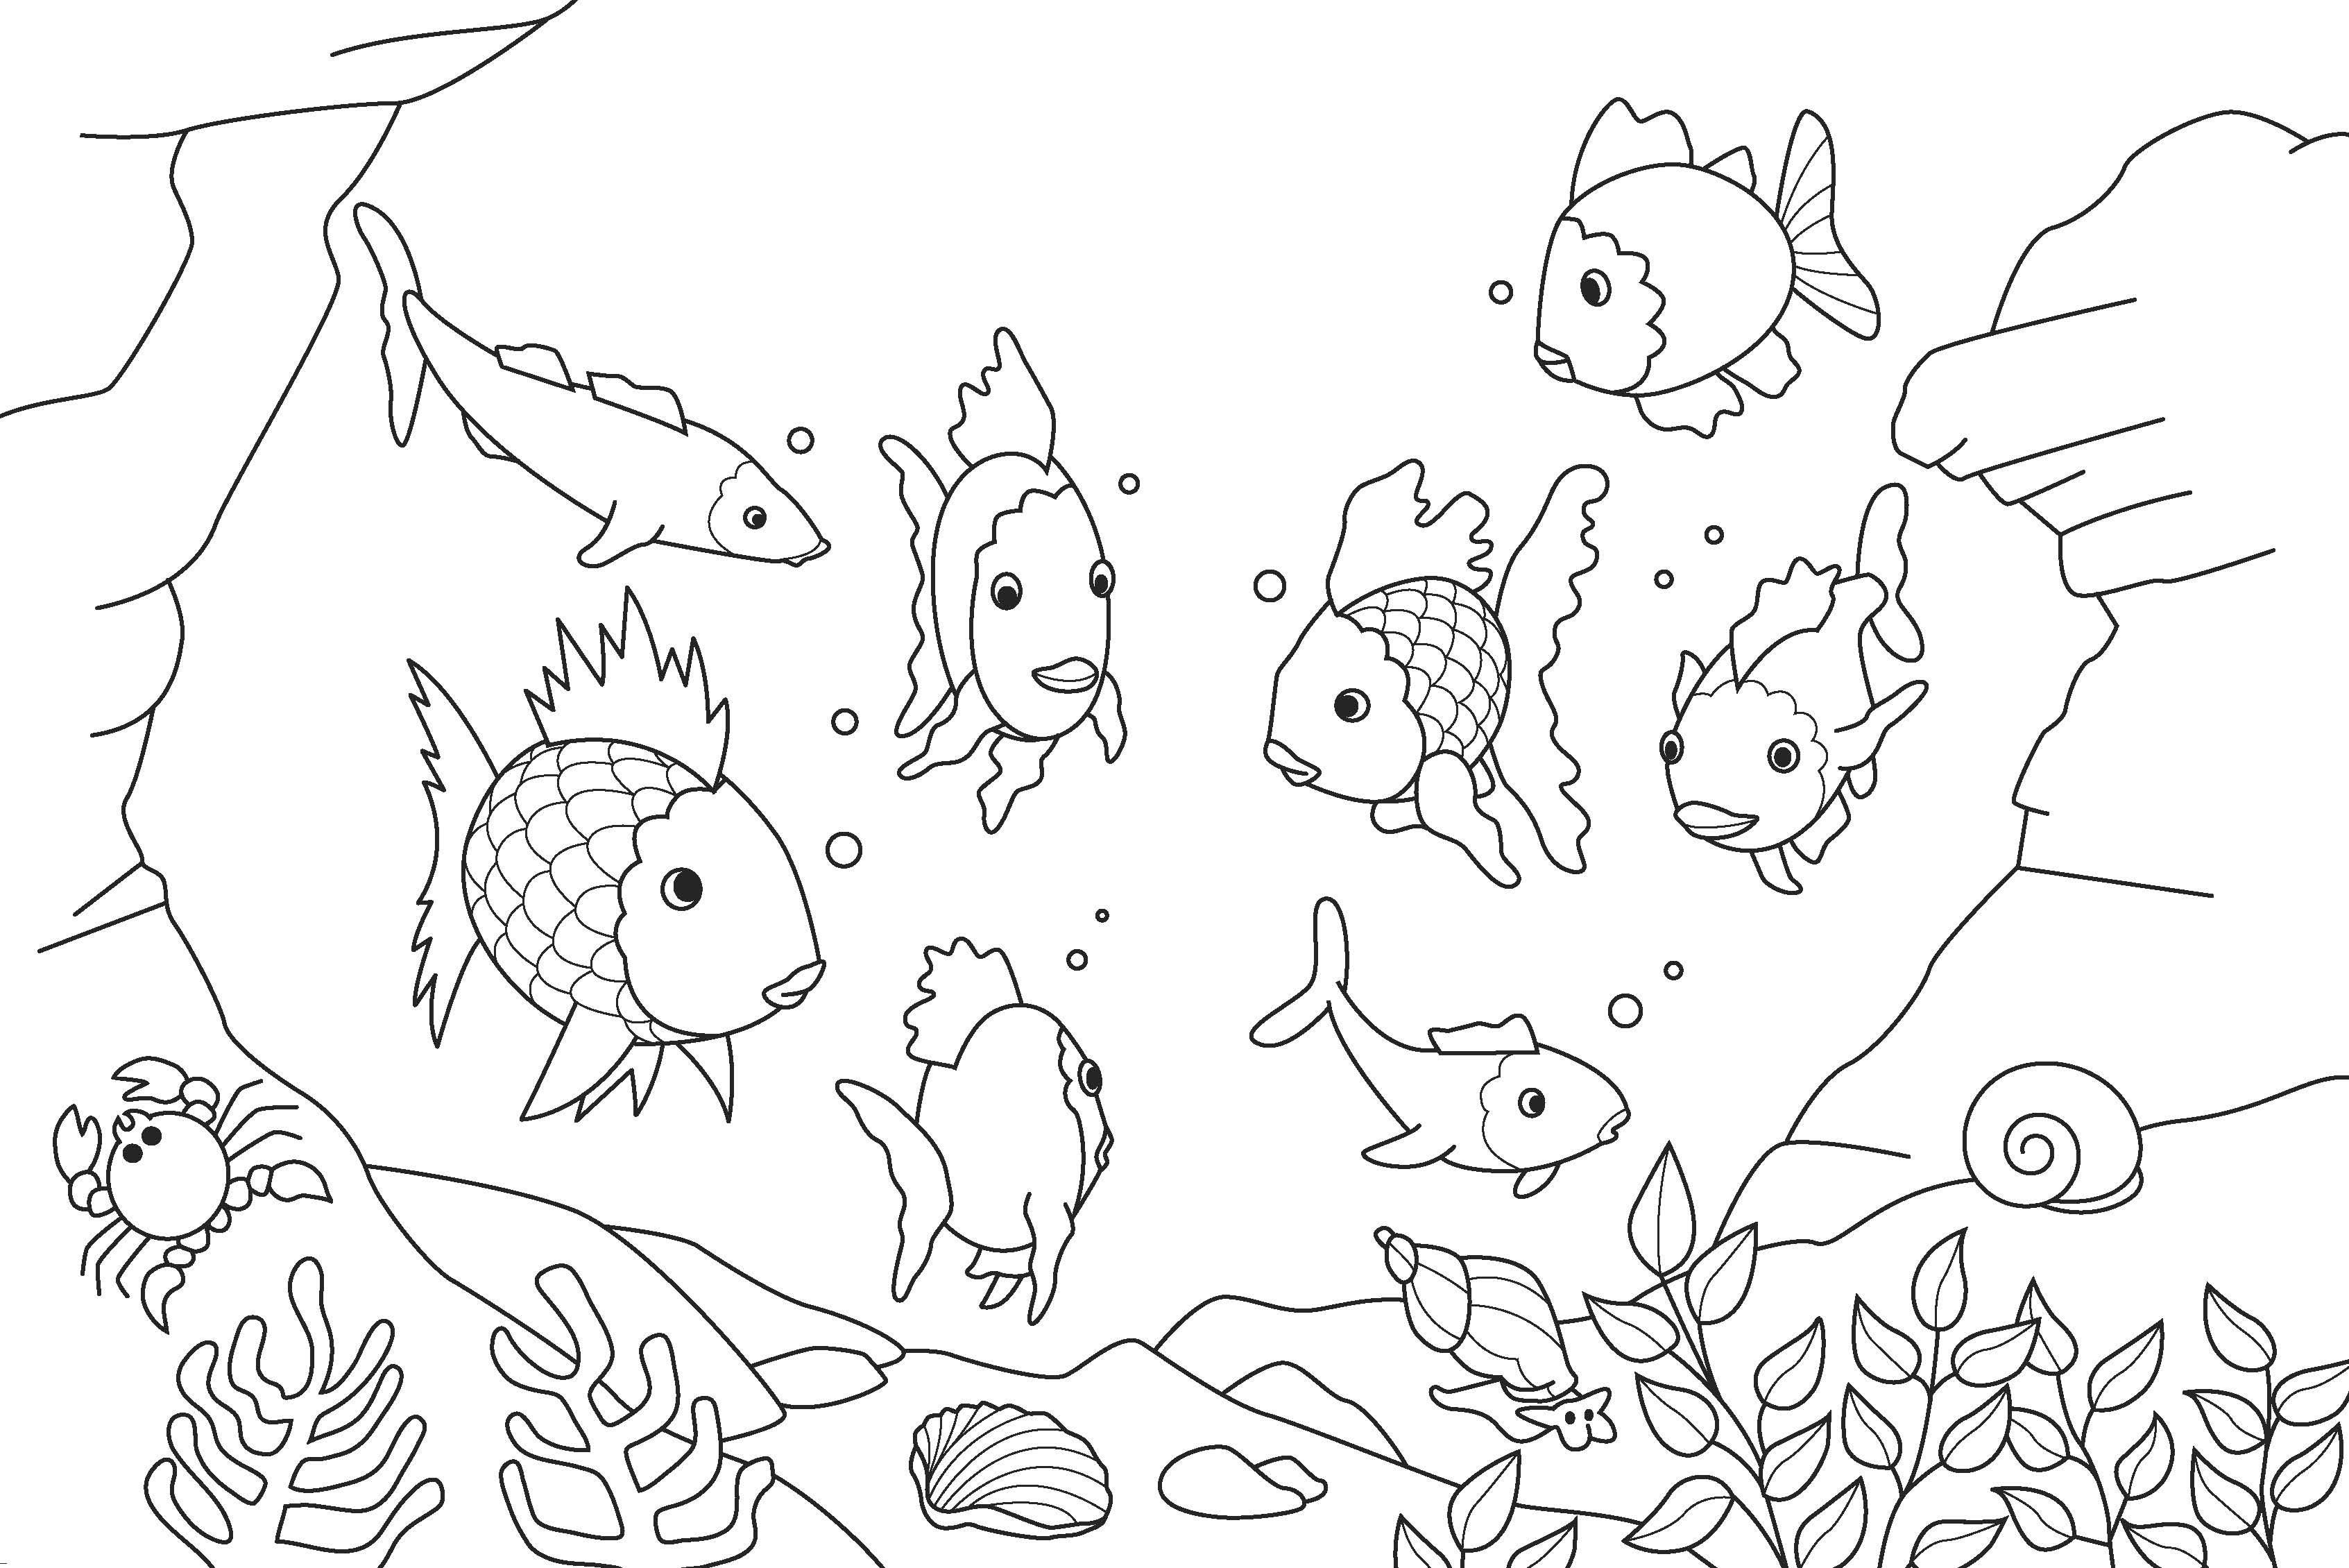 fish coloring page - free printable fish coloring pages for kids